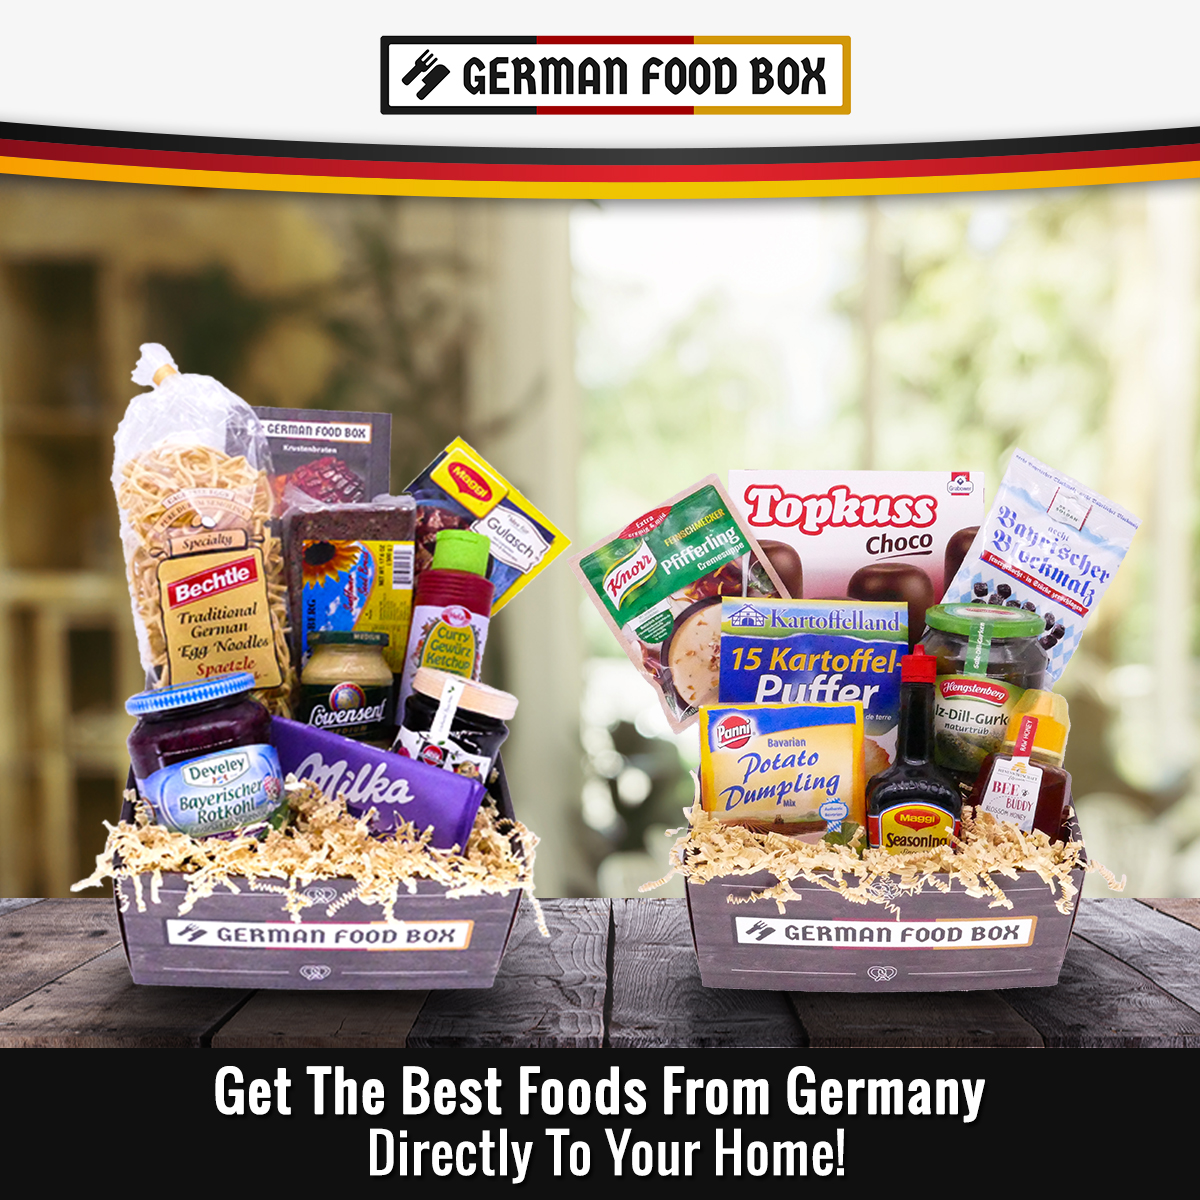 Try the German Food Box Subscr...